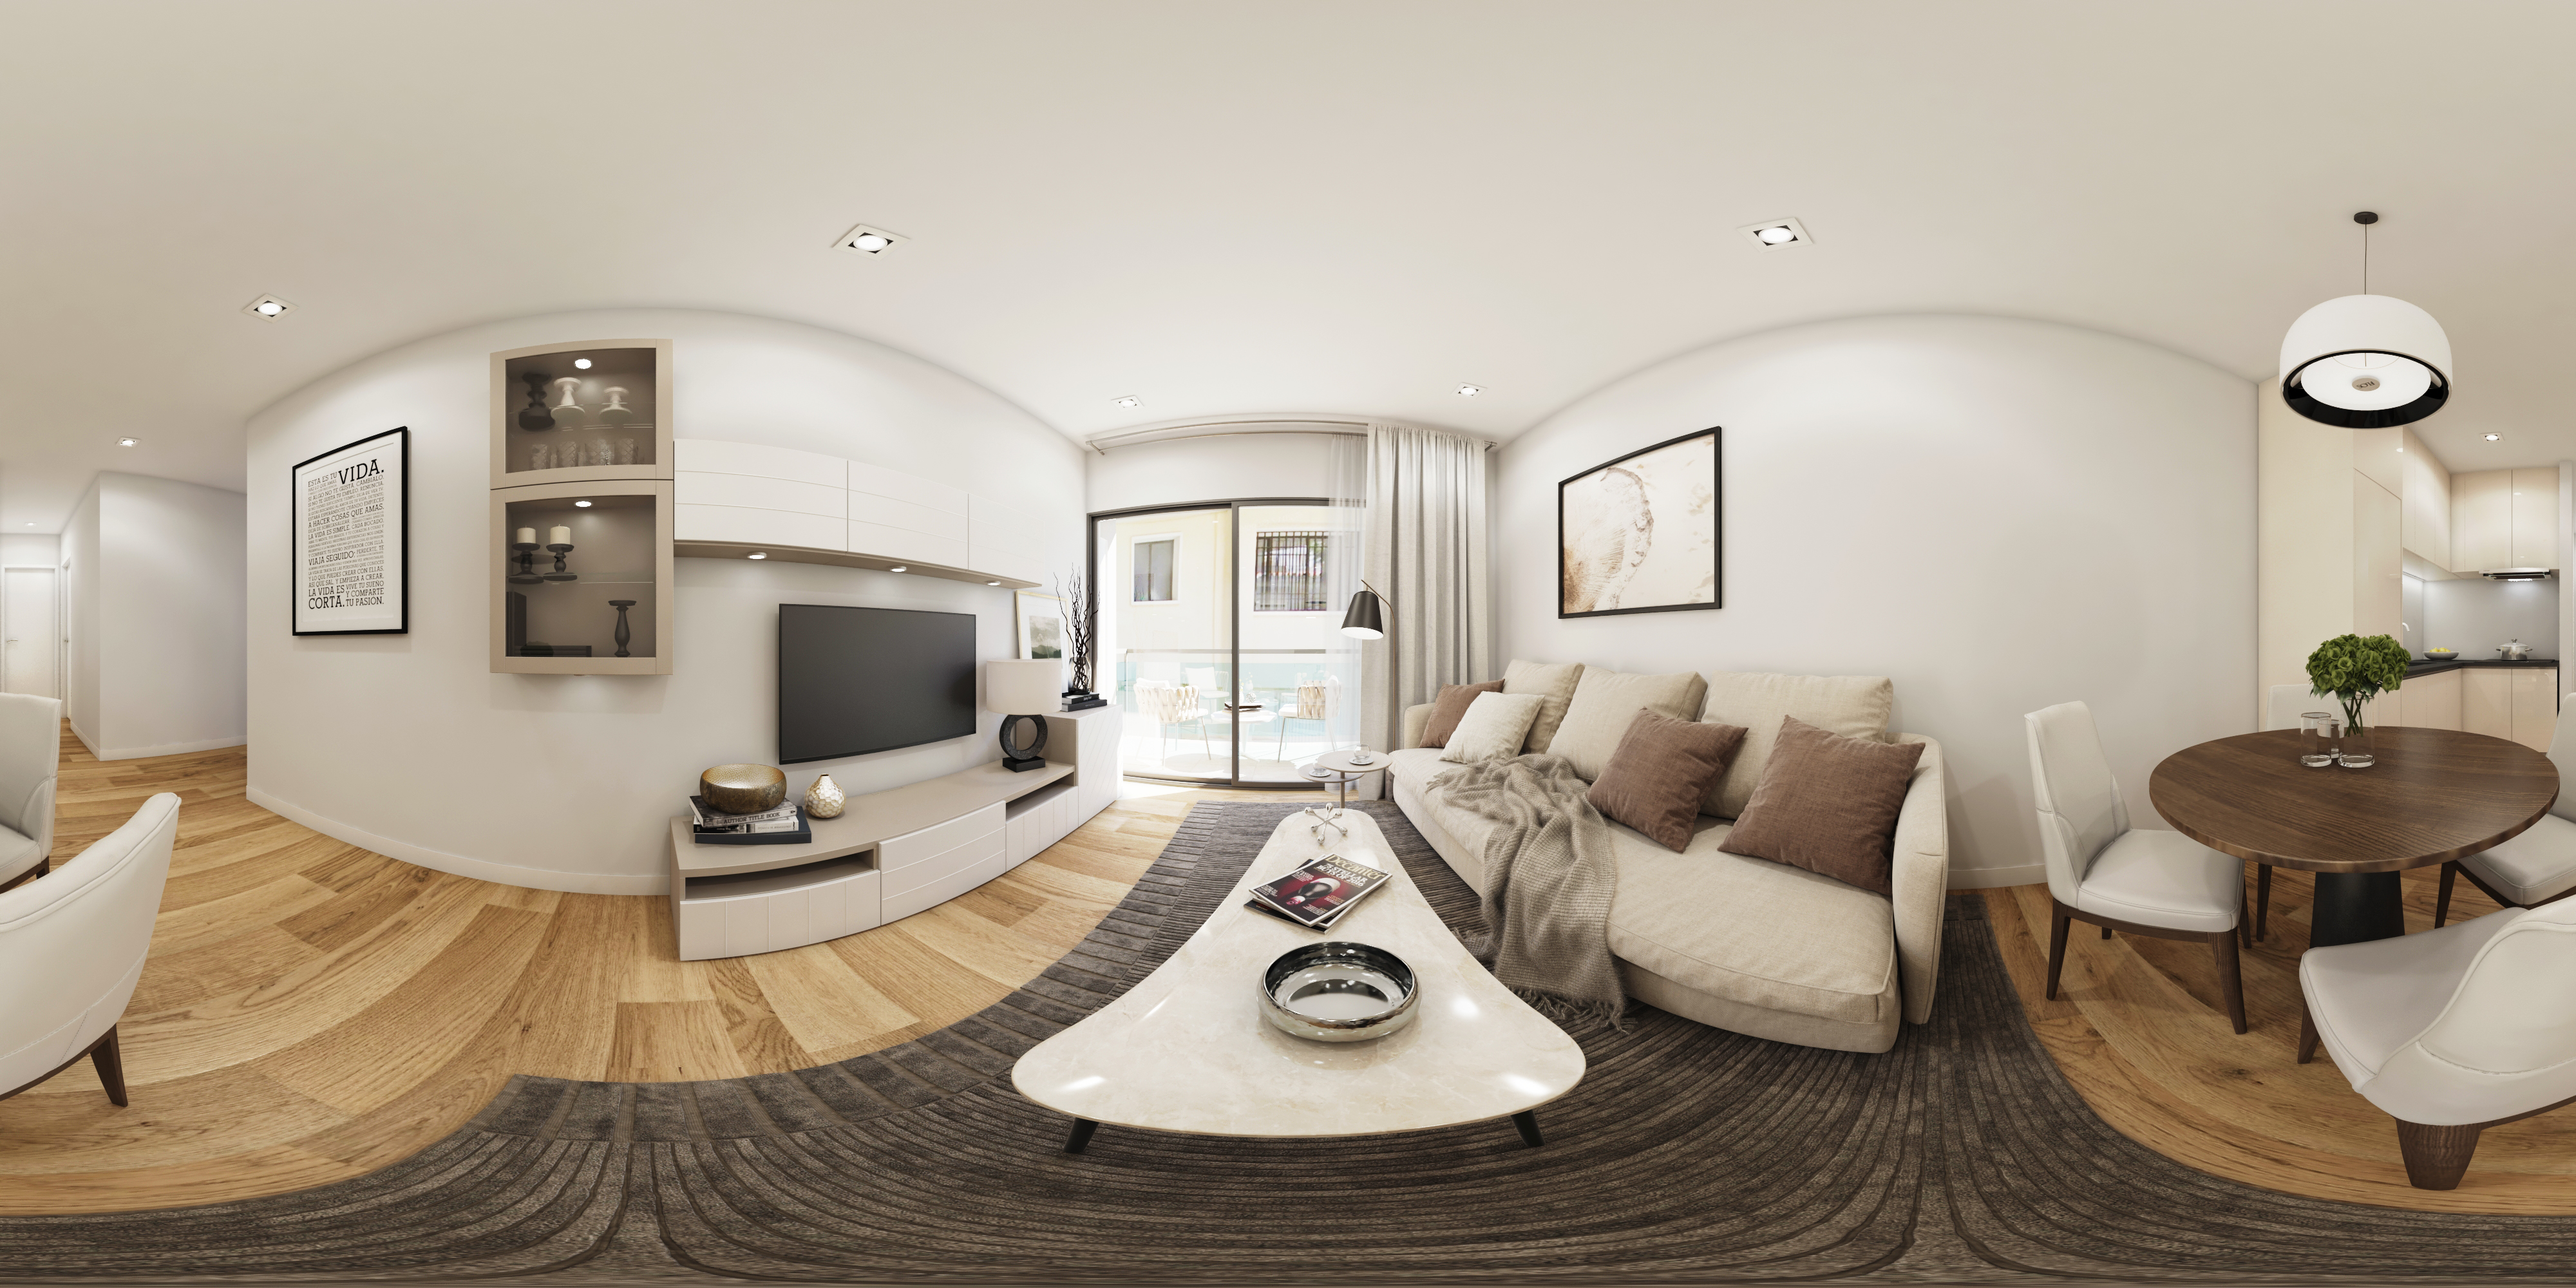 Apartment,For Sale,1153